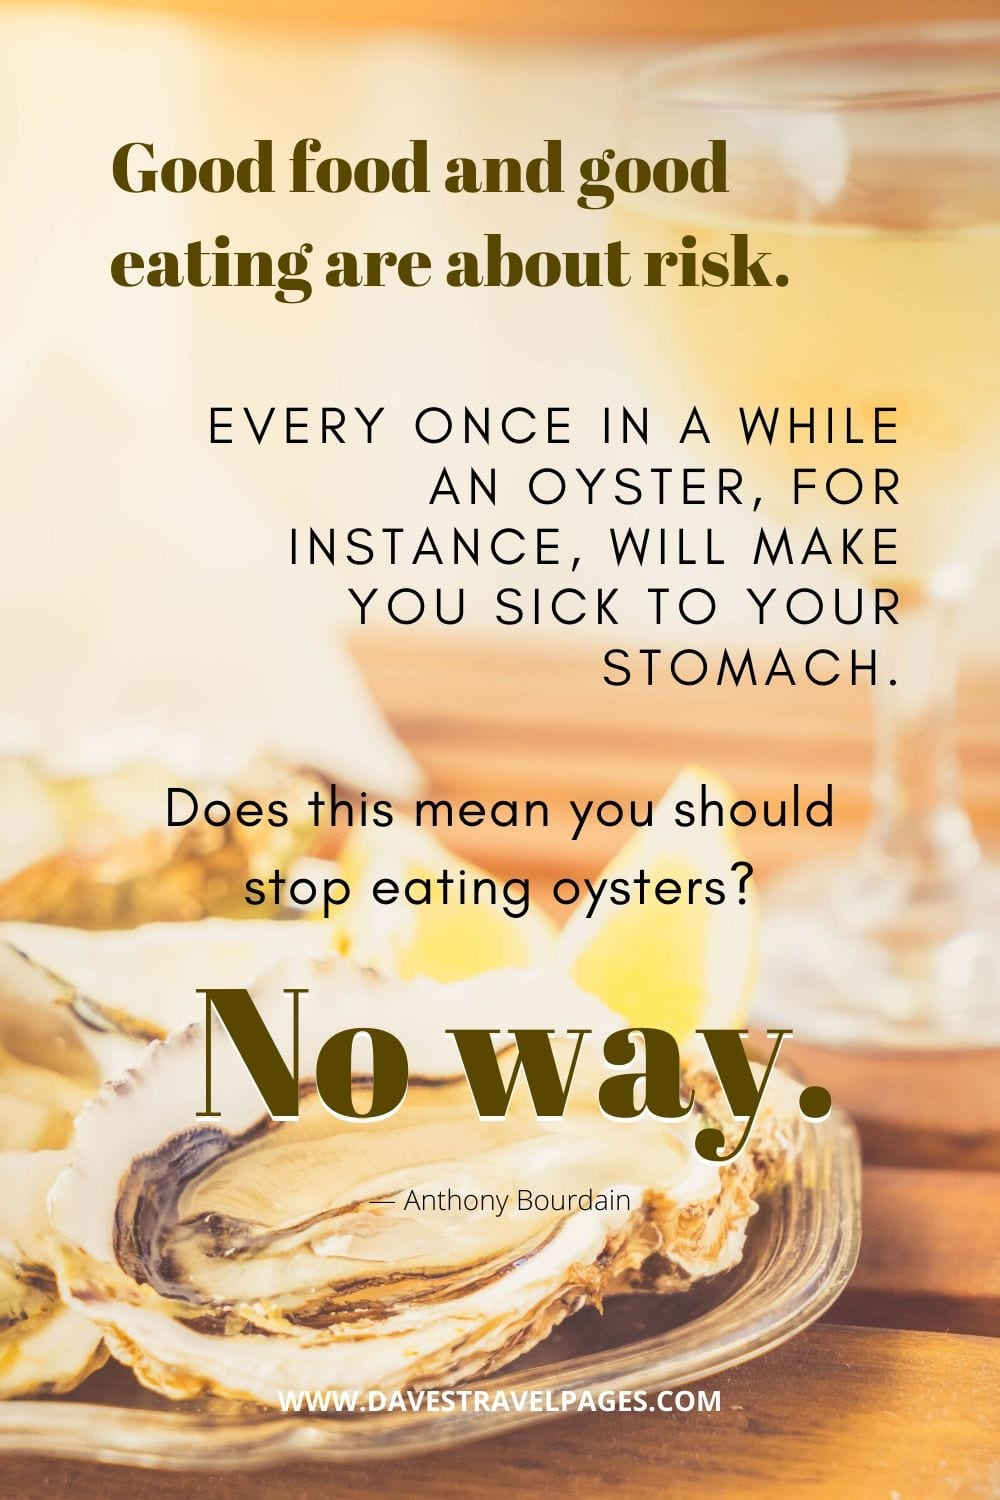 """""""Good food and good eating are about risk. Every once in a while an oyster, for instance, will make you sick to your stomach. Does this mean you should stop eating oysters? No way.""""― Anthony Bourdain"""